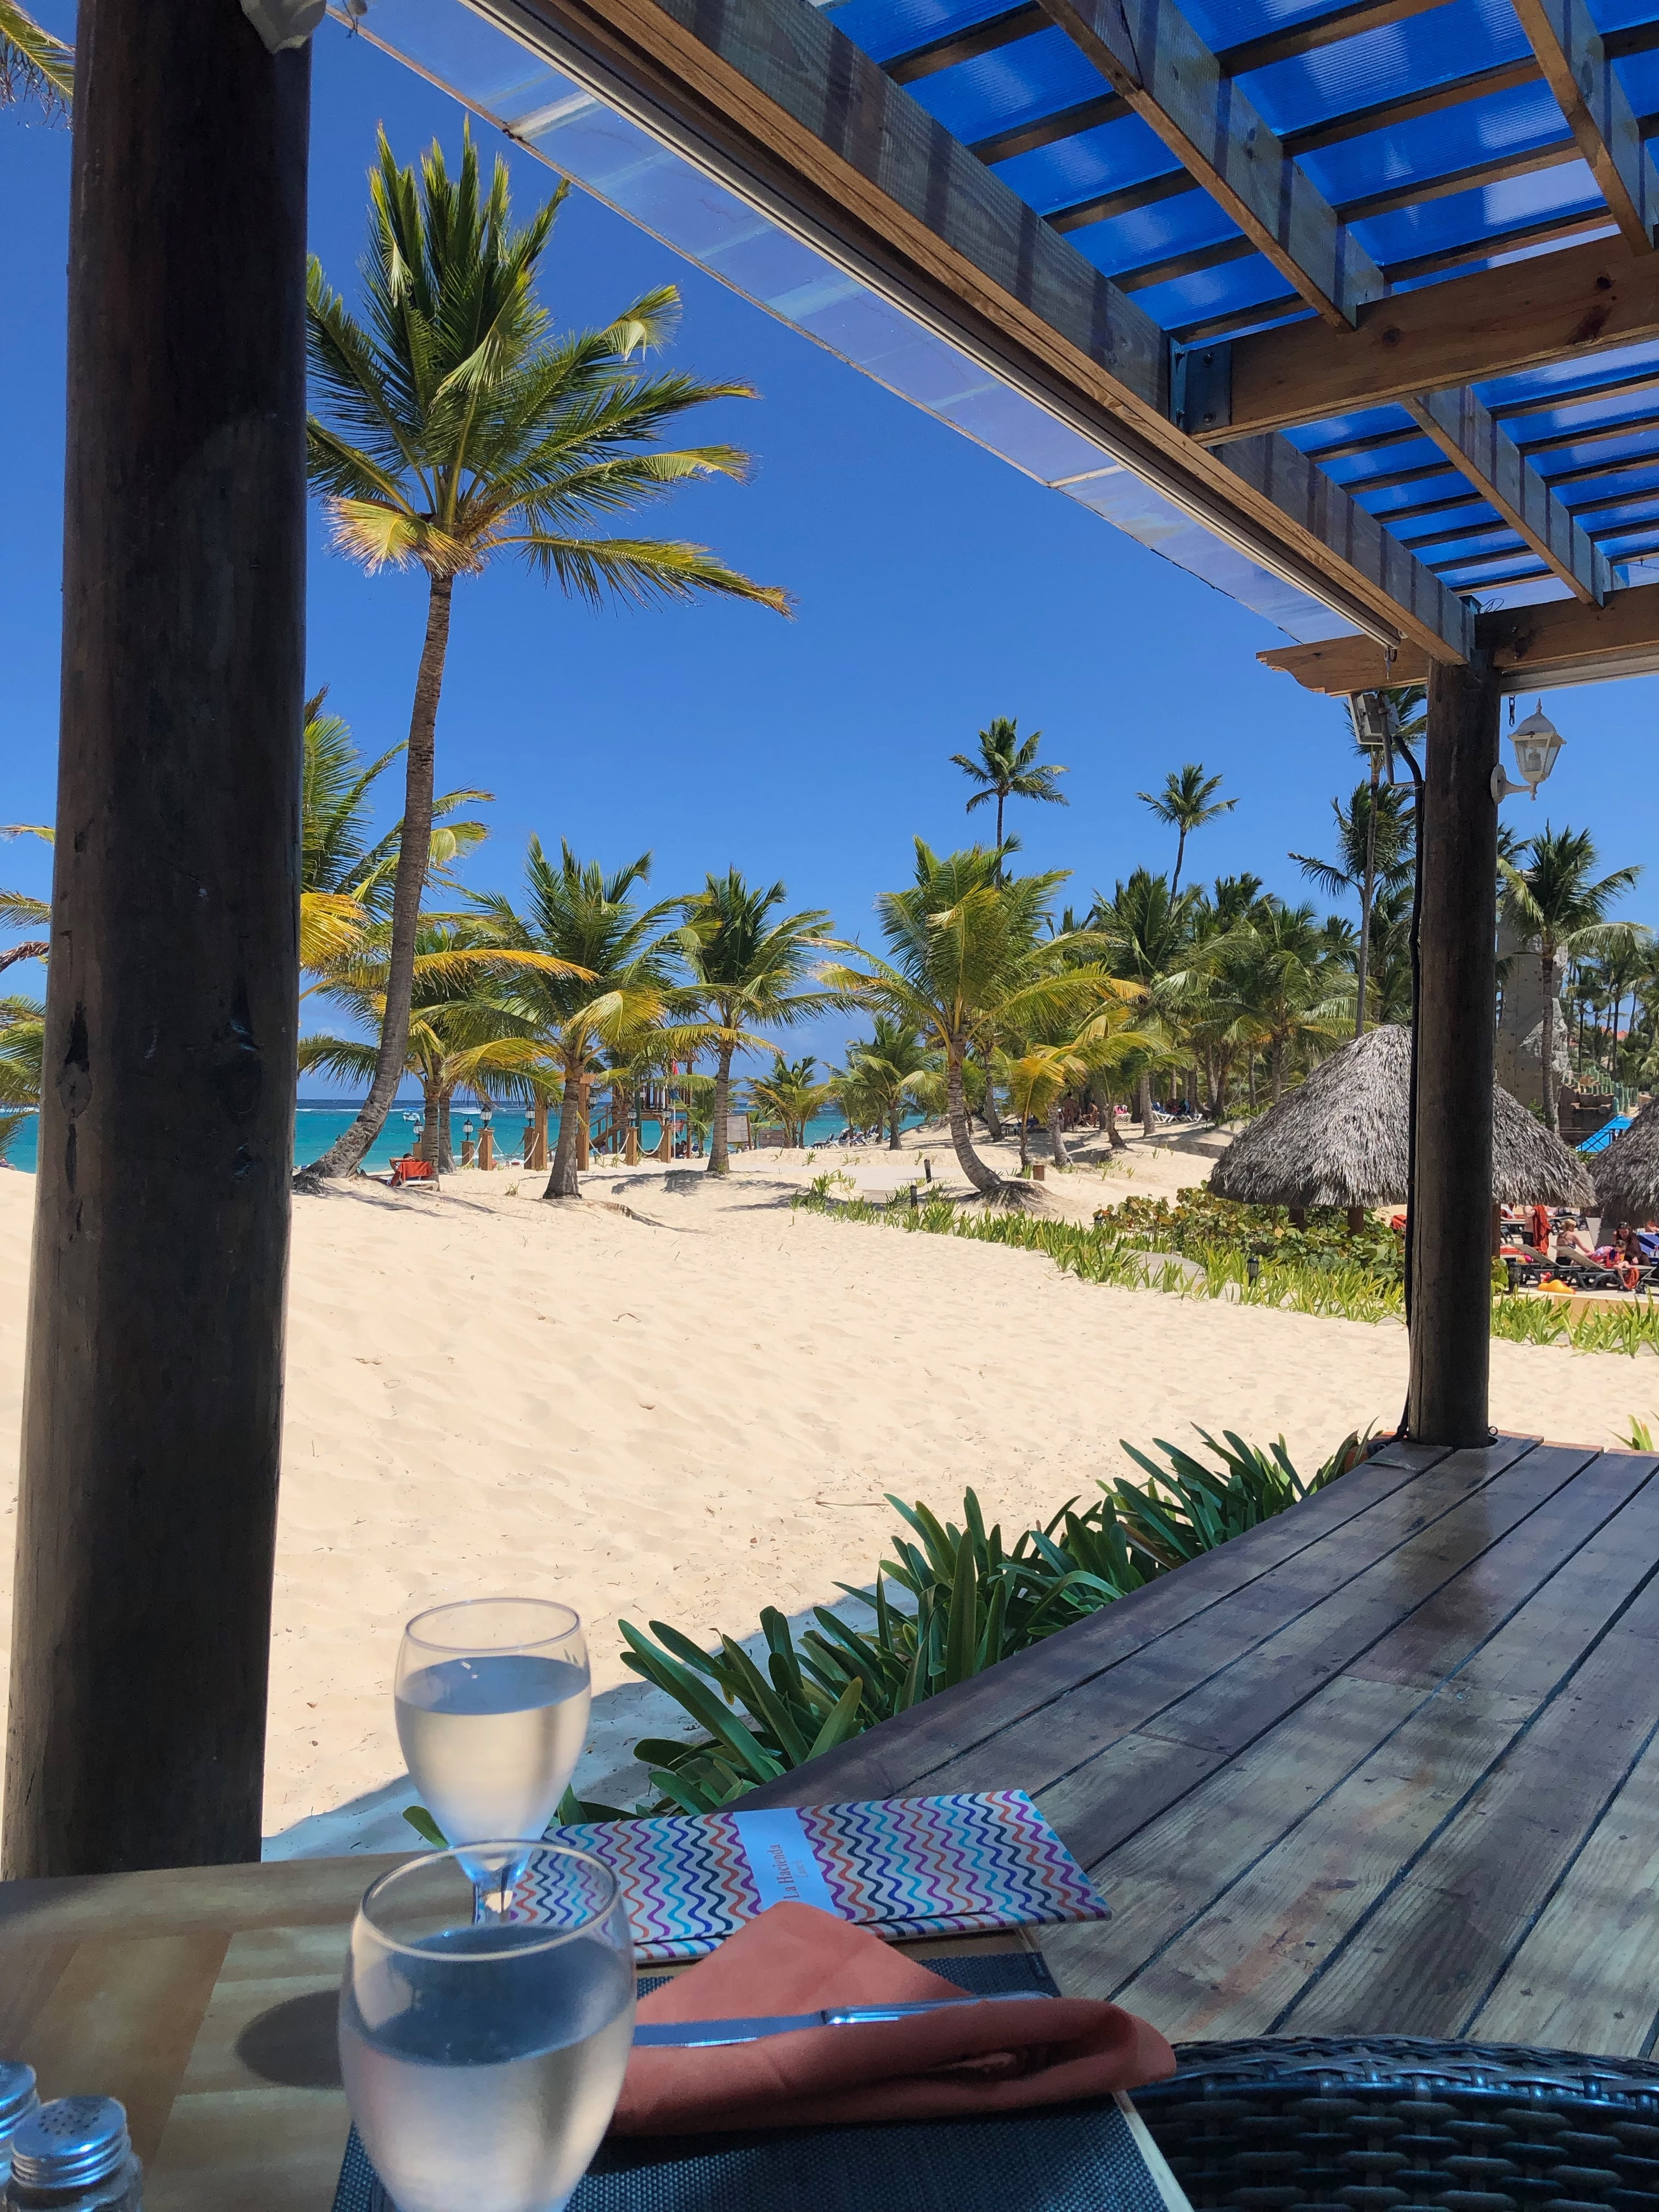 View of Beach from Restaurant in Dominican Republic